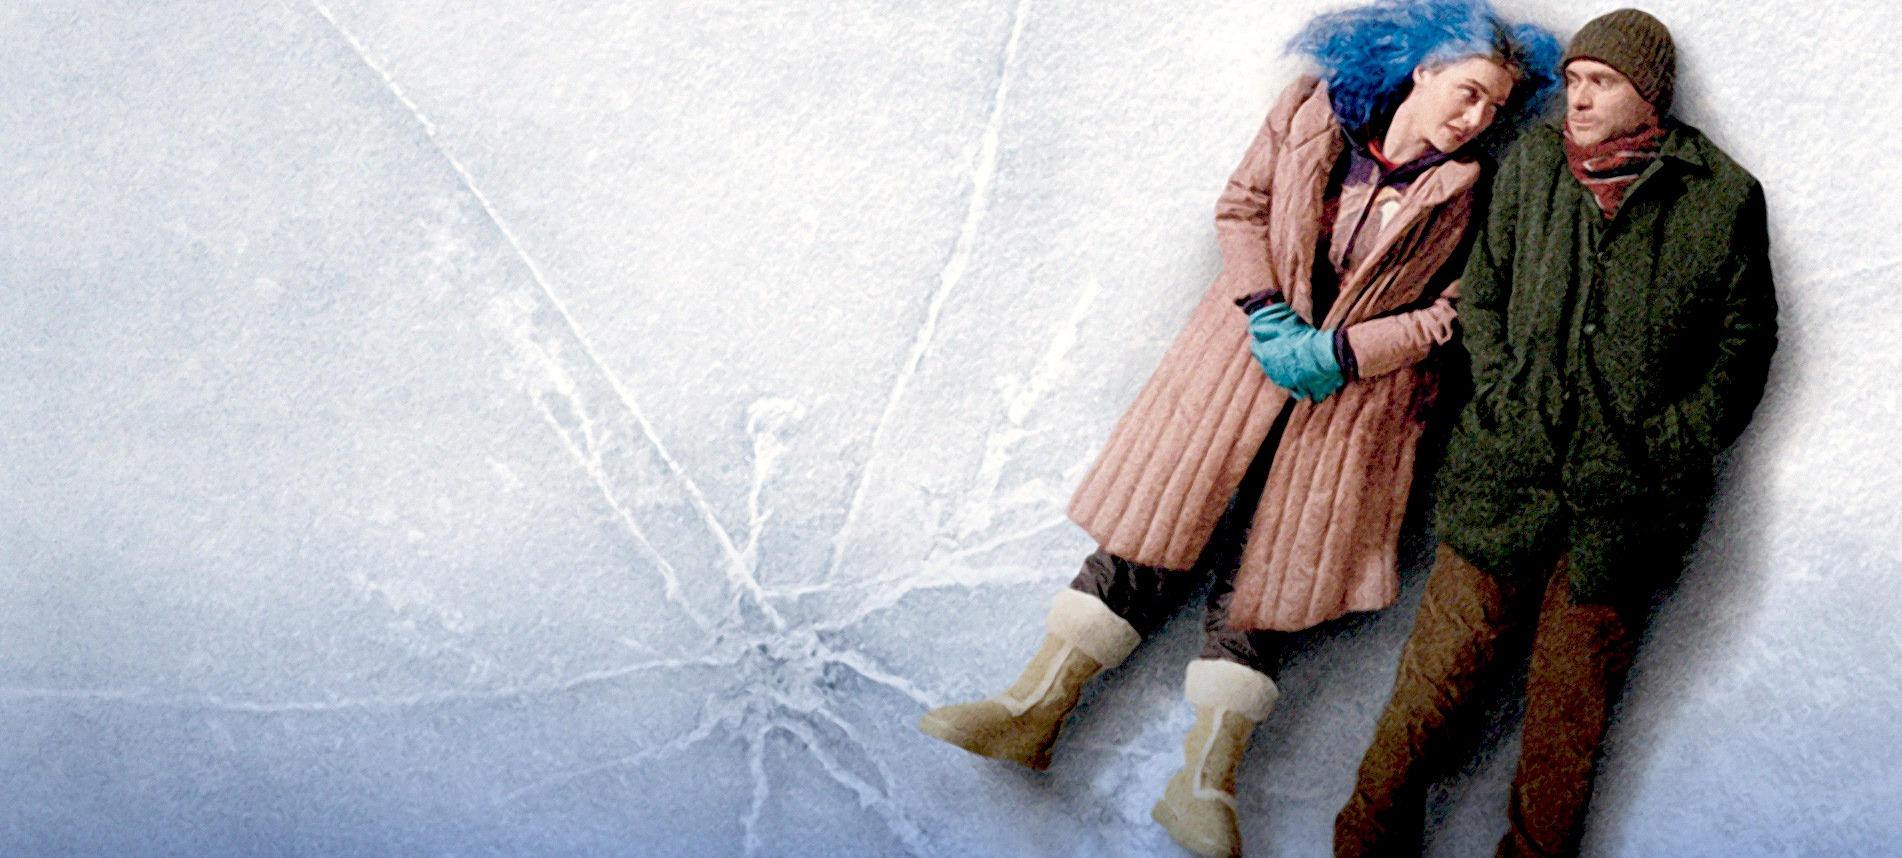 Think Different Wallpaper Hd Eternal Sunshine Of The Spotless Mind My Thoughts After